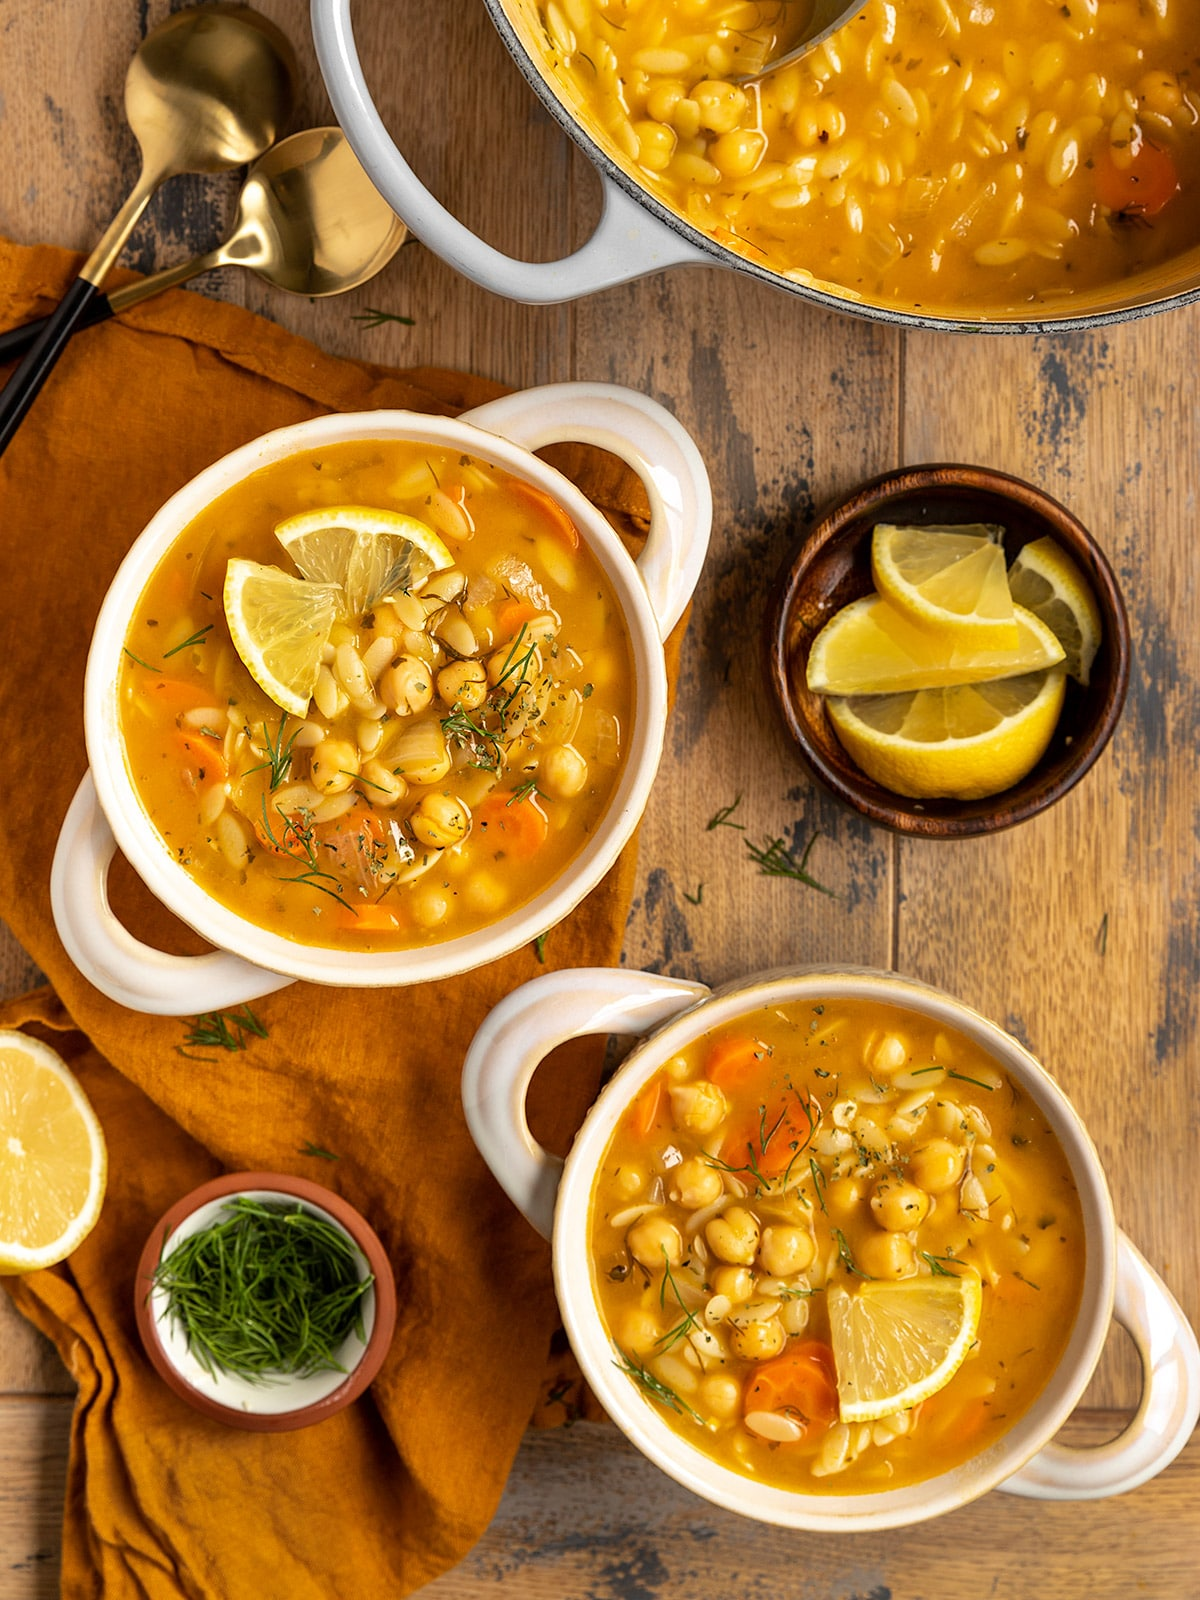 two bowls of soup filled with lemon, chickpeas, orzo, dill, and carrots